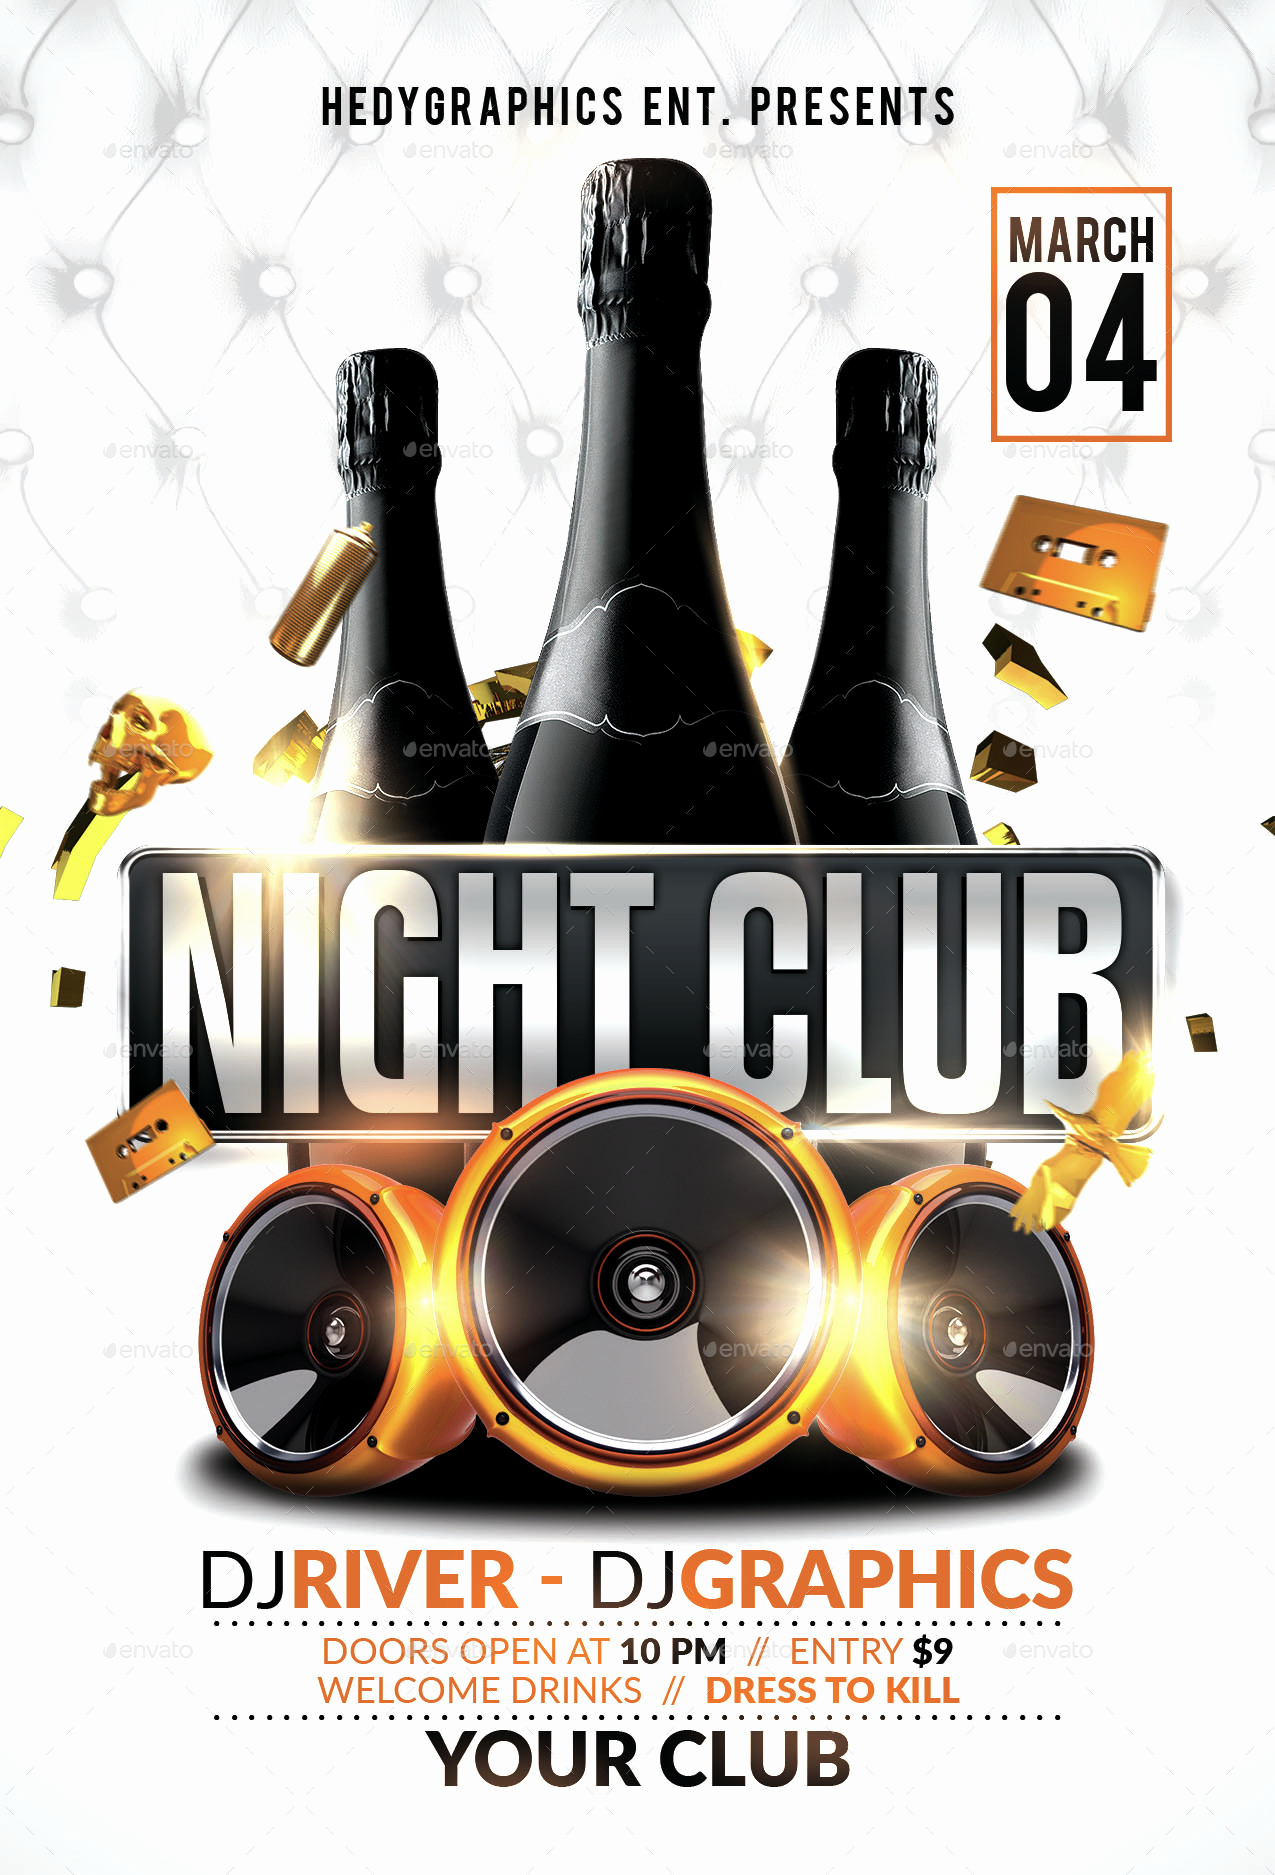 Night Club Flyer Templates Unique Night Club Flyer Template by Hedygraphics